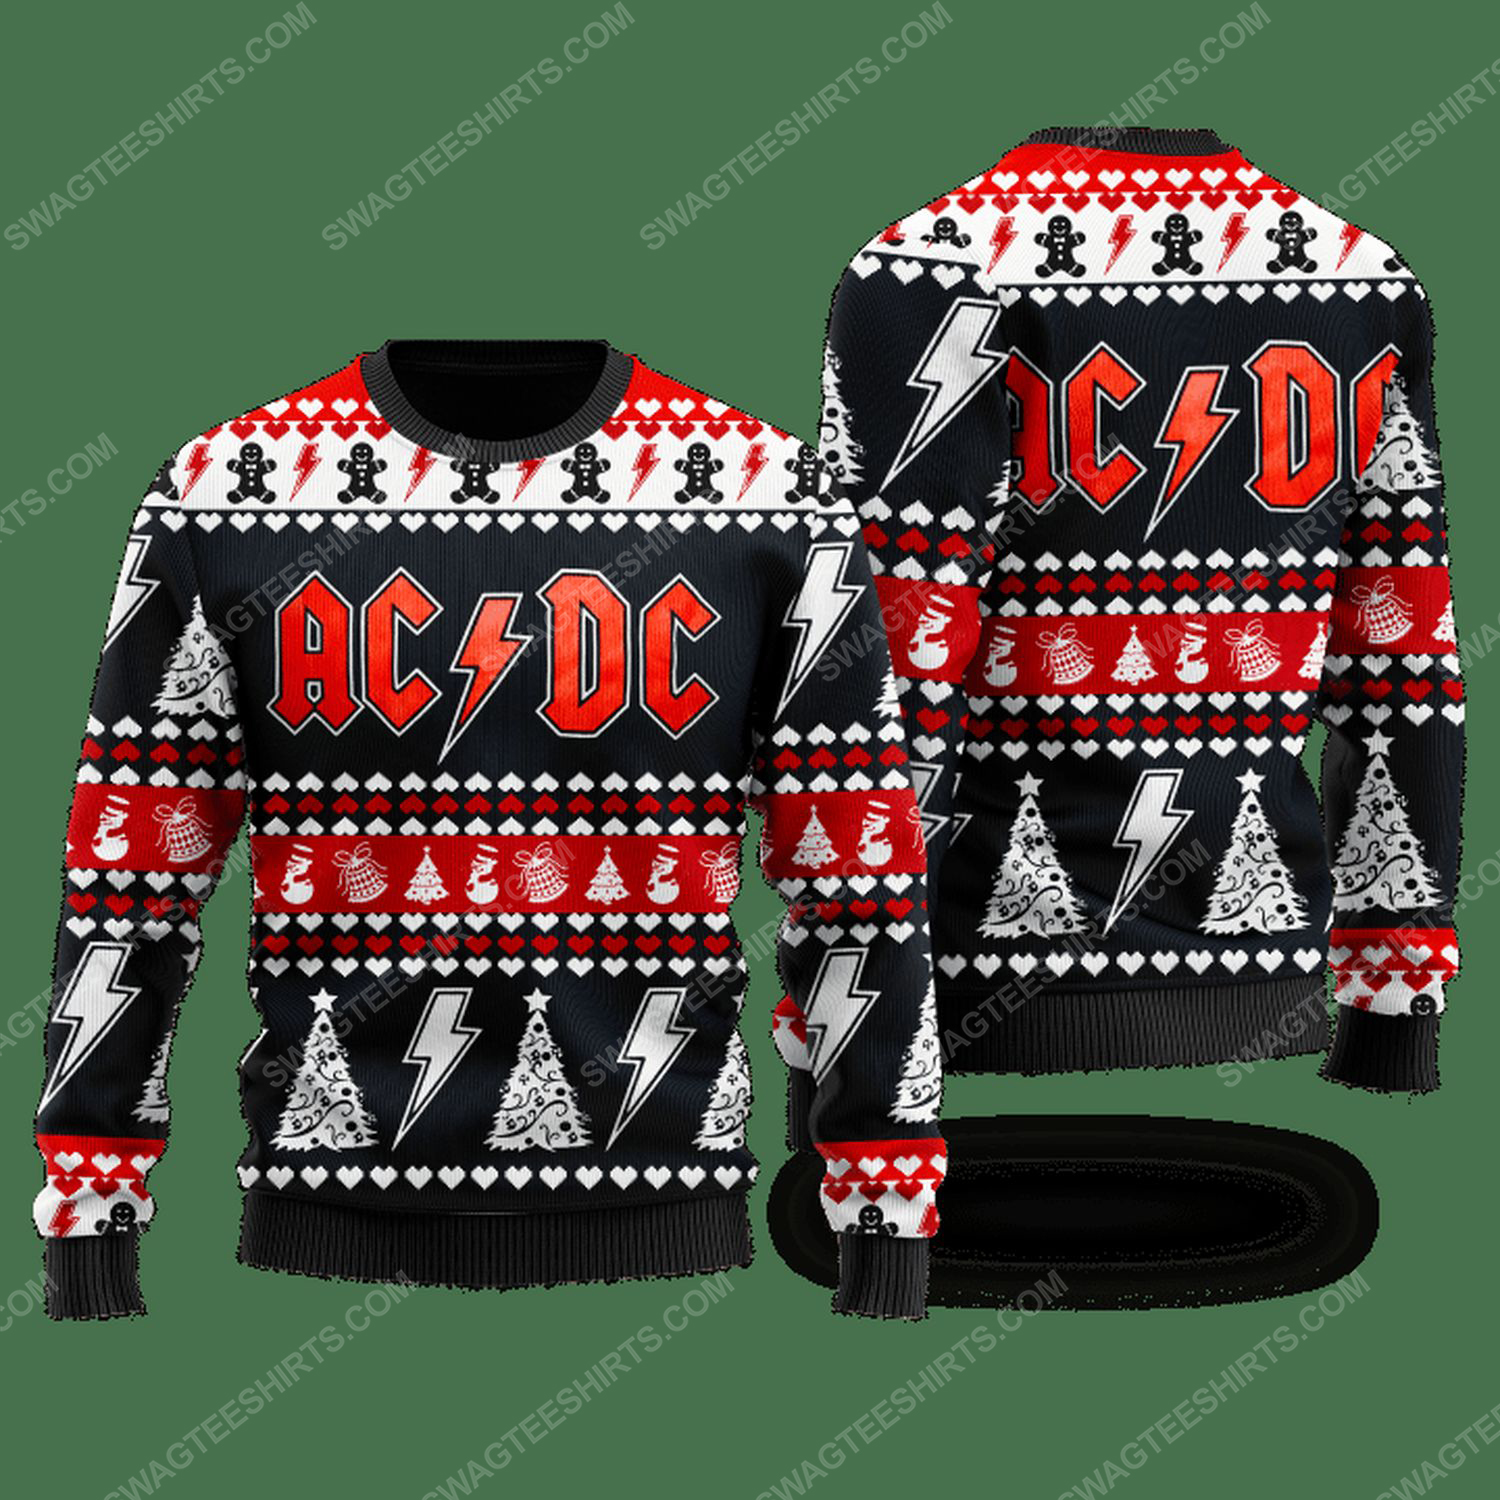 AC DC rock band ugly christmas sweater - Copy